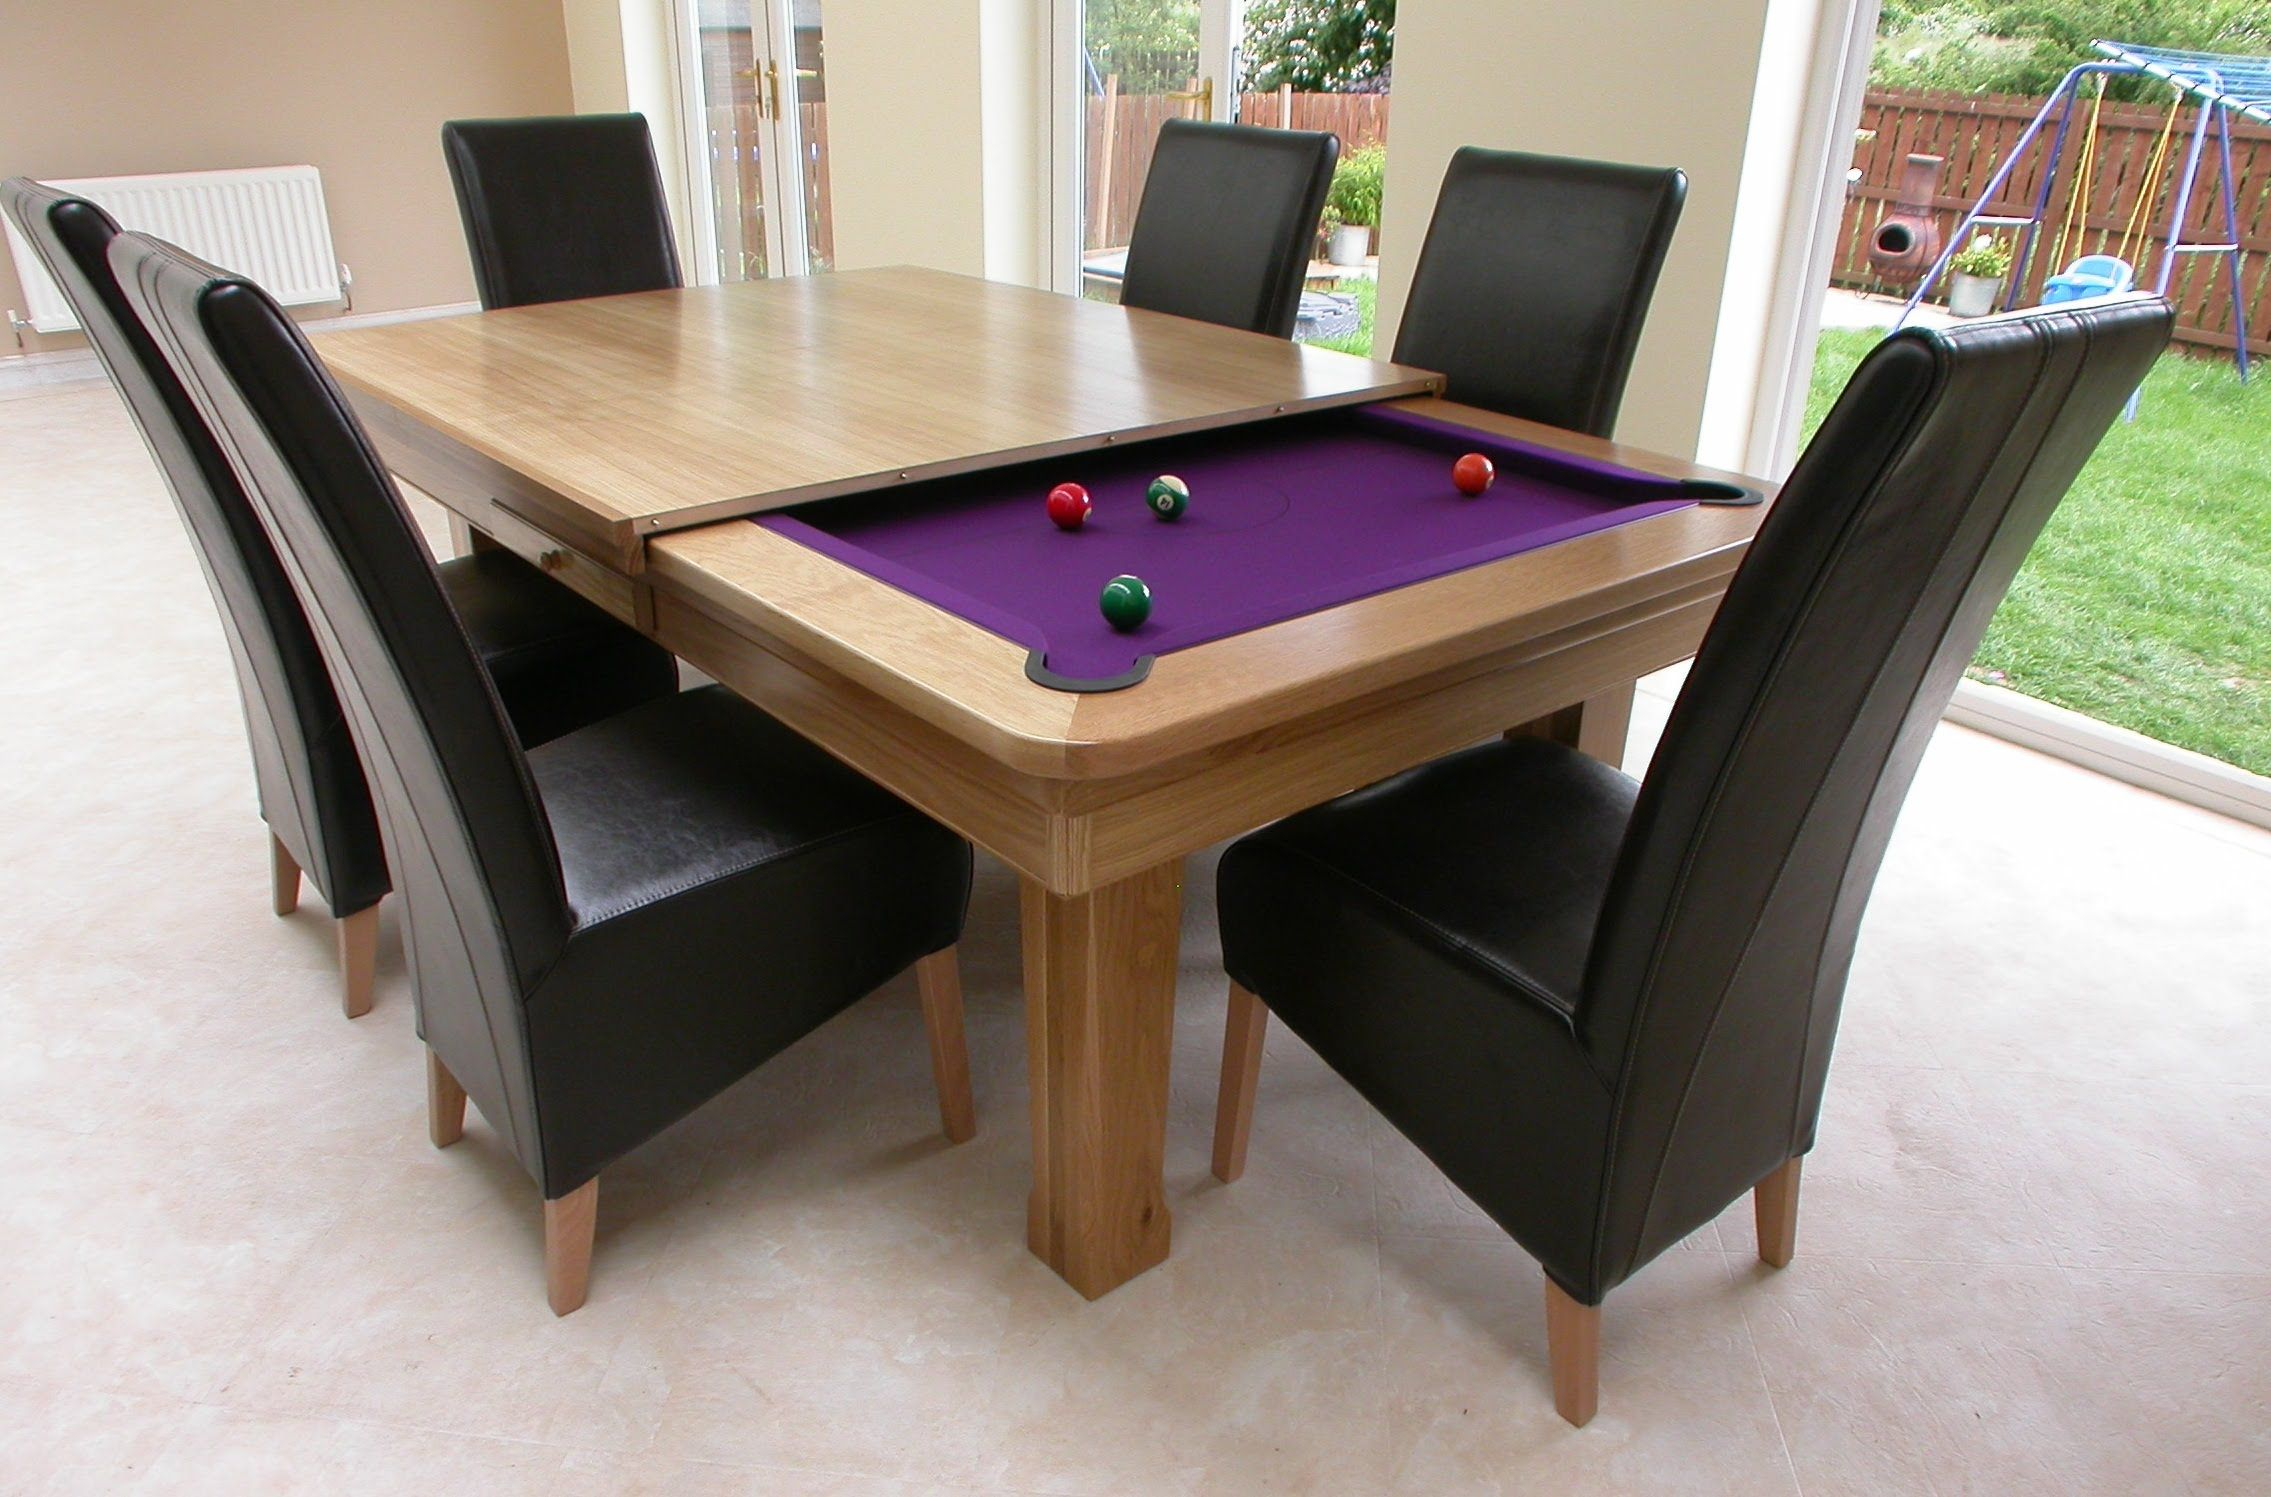 Awesome Pool Table Dining Table Combo Youtube Pool Table